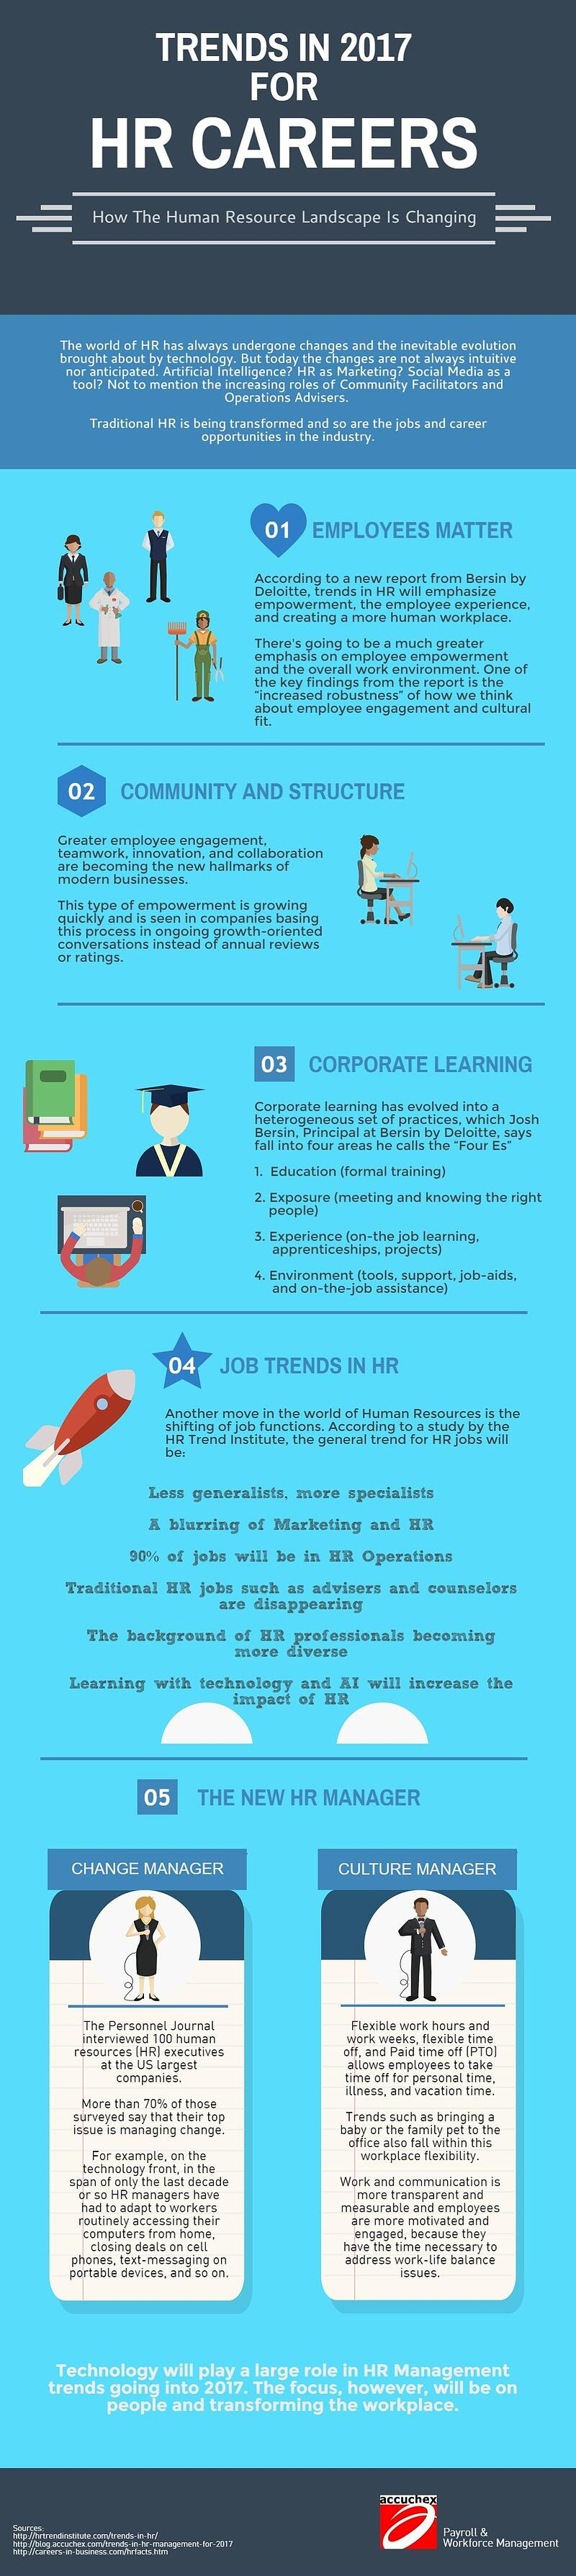 trends-in-hr-management-in-2017-infographic